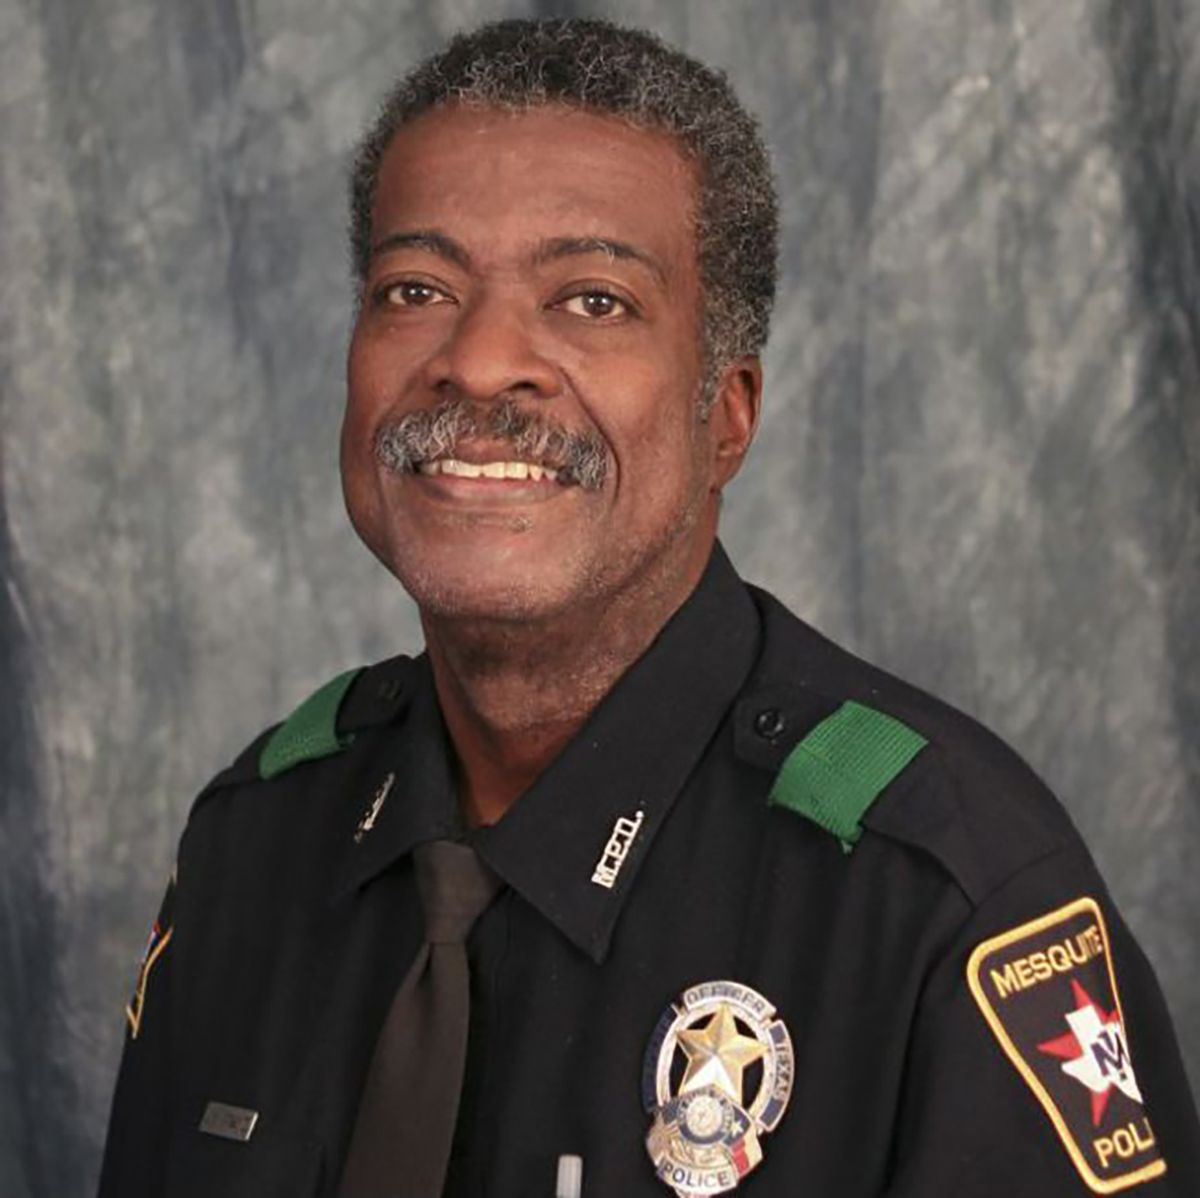 Jon Latimore served 28 years in the Mesquite Police Department where he was the force's first African American officer. The park to be named after Latimore will be on North Bryan Avenue.